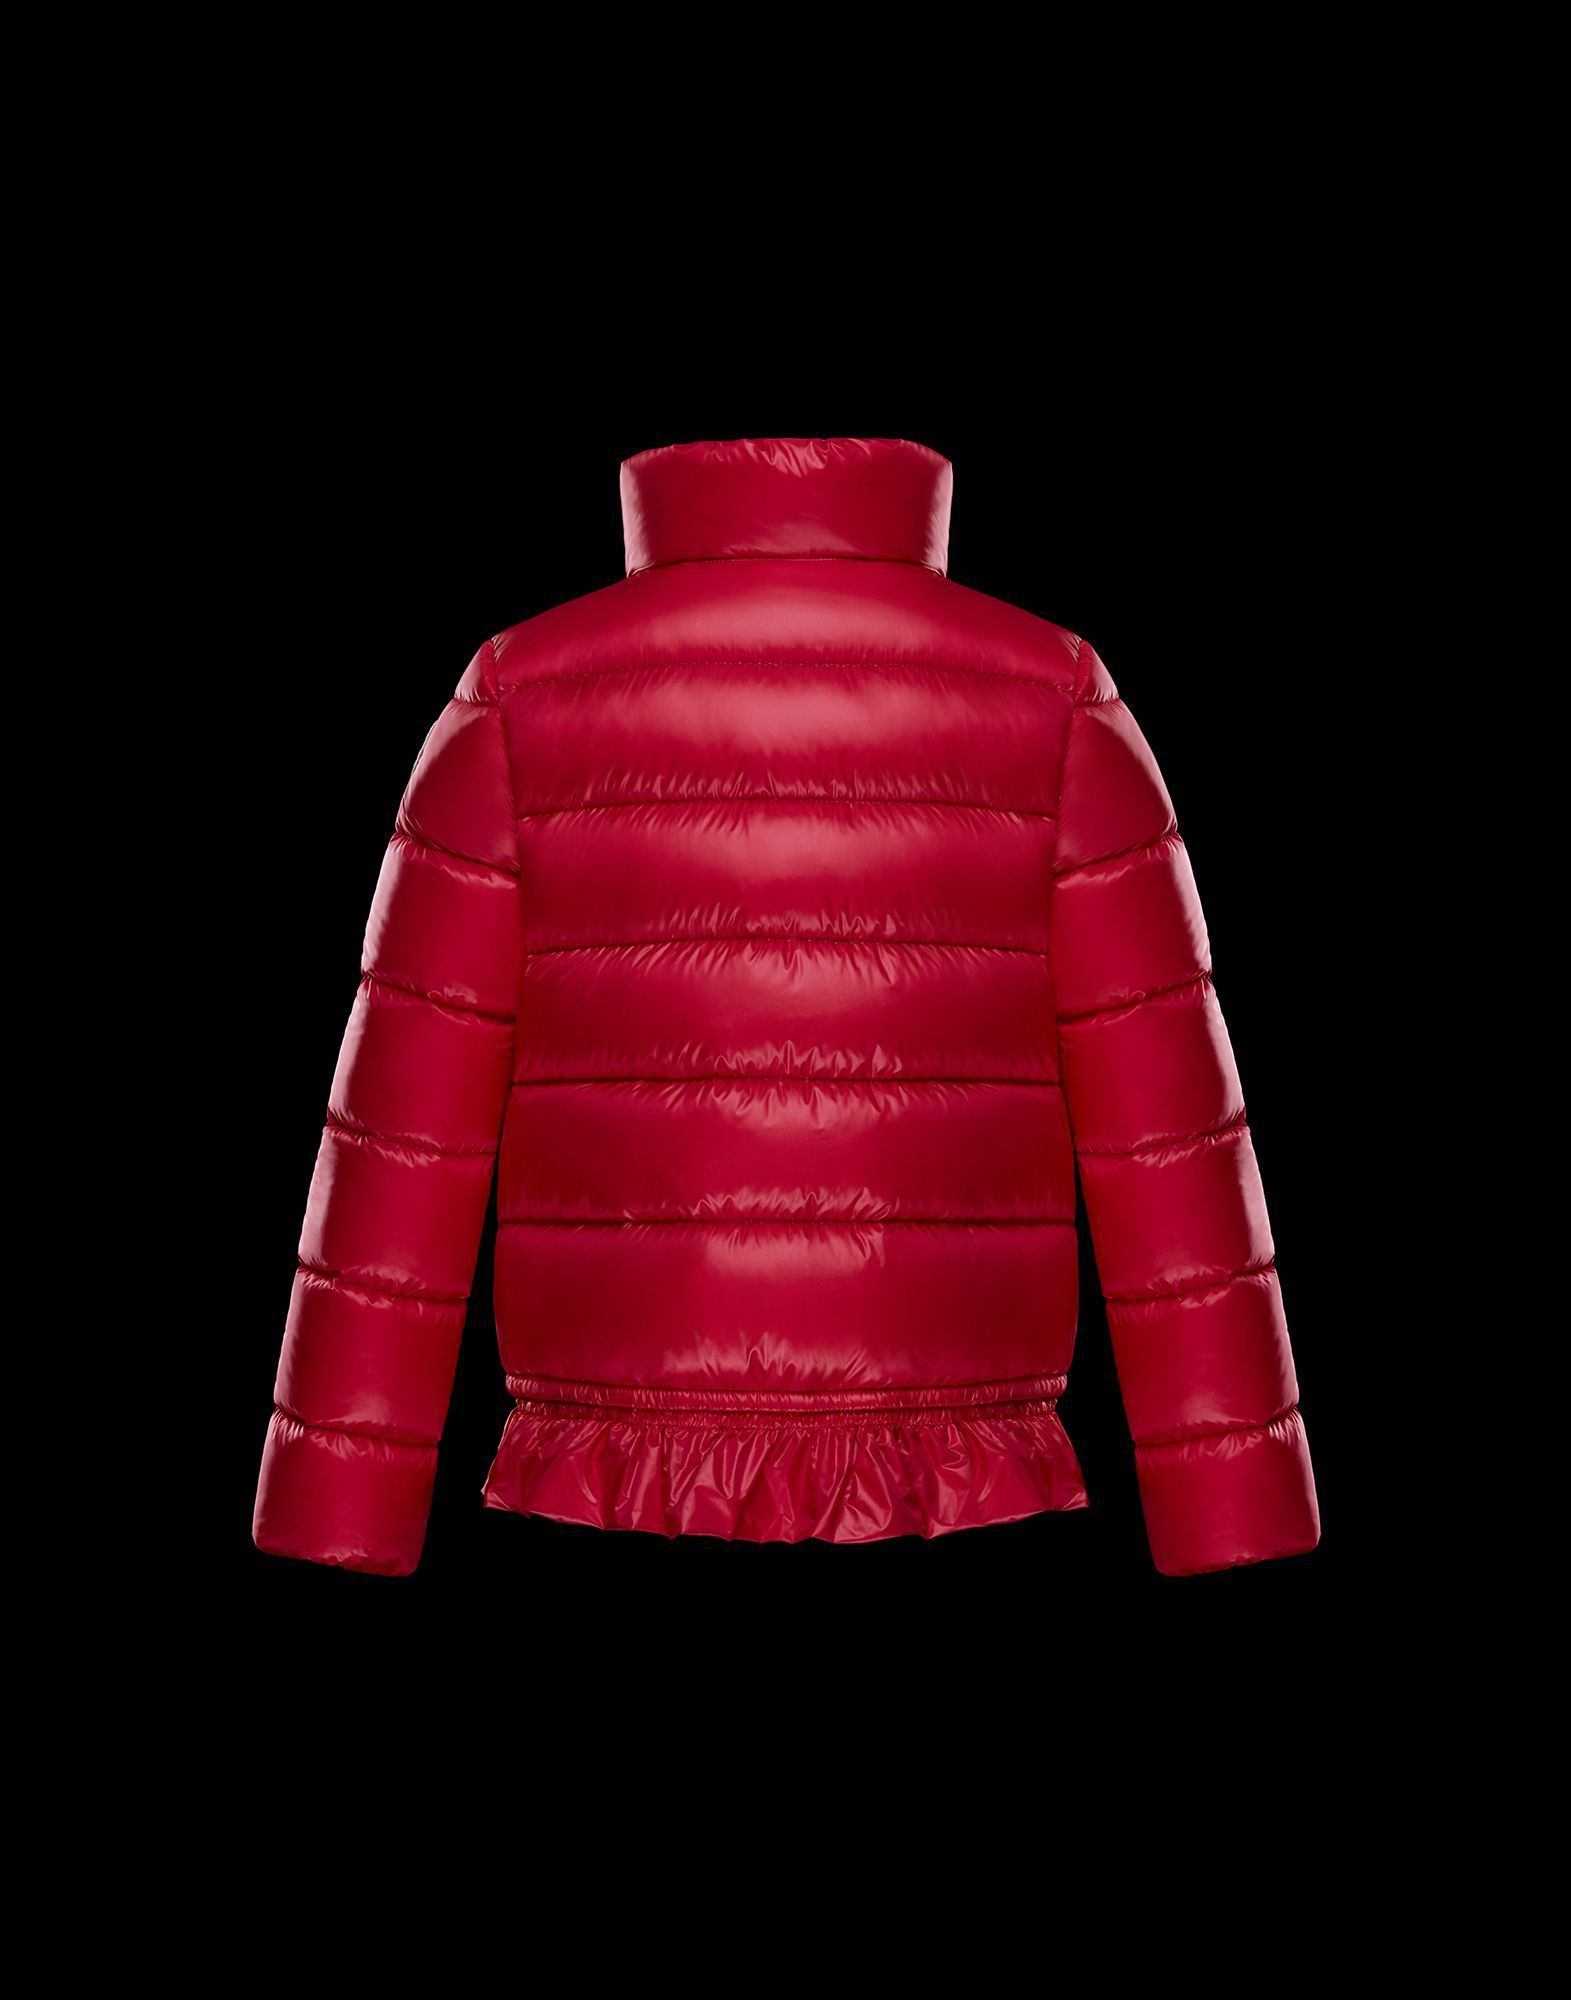 TOPセラー賞!大人も着れる12-14歳┃17AW┃MONCLER★ANETTE